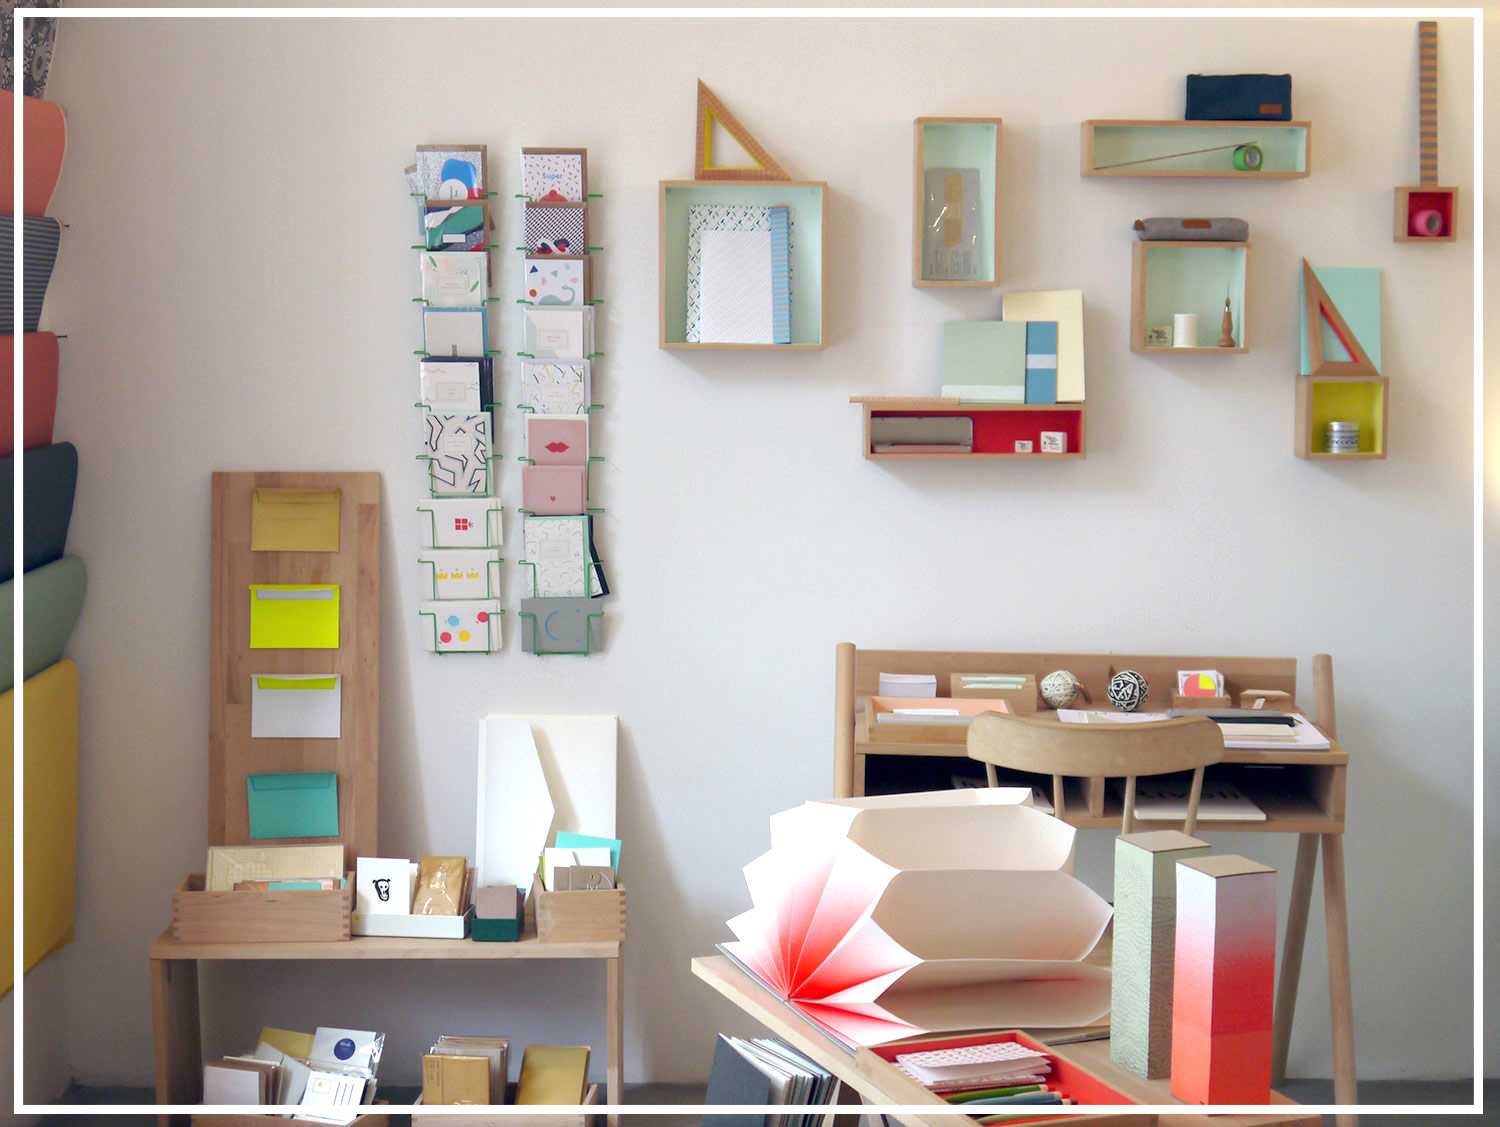 A paper walk in Vienna: sous-bois stationery shop